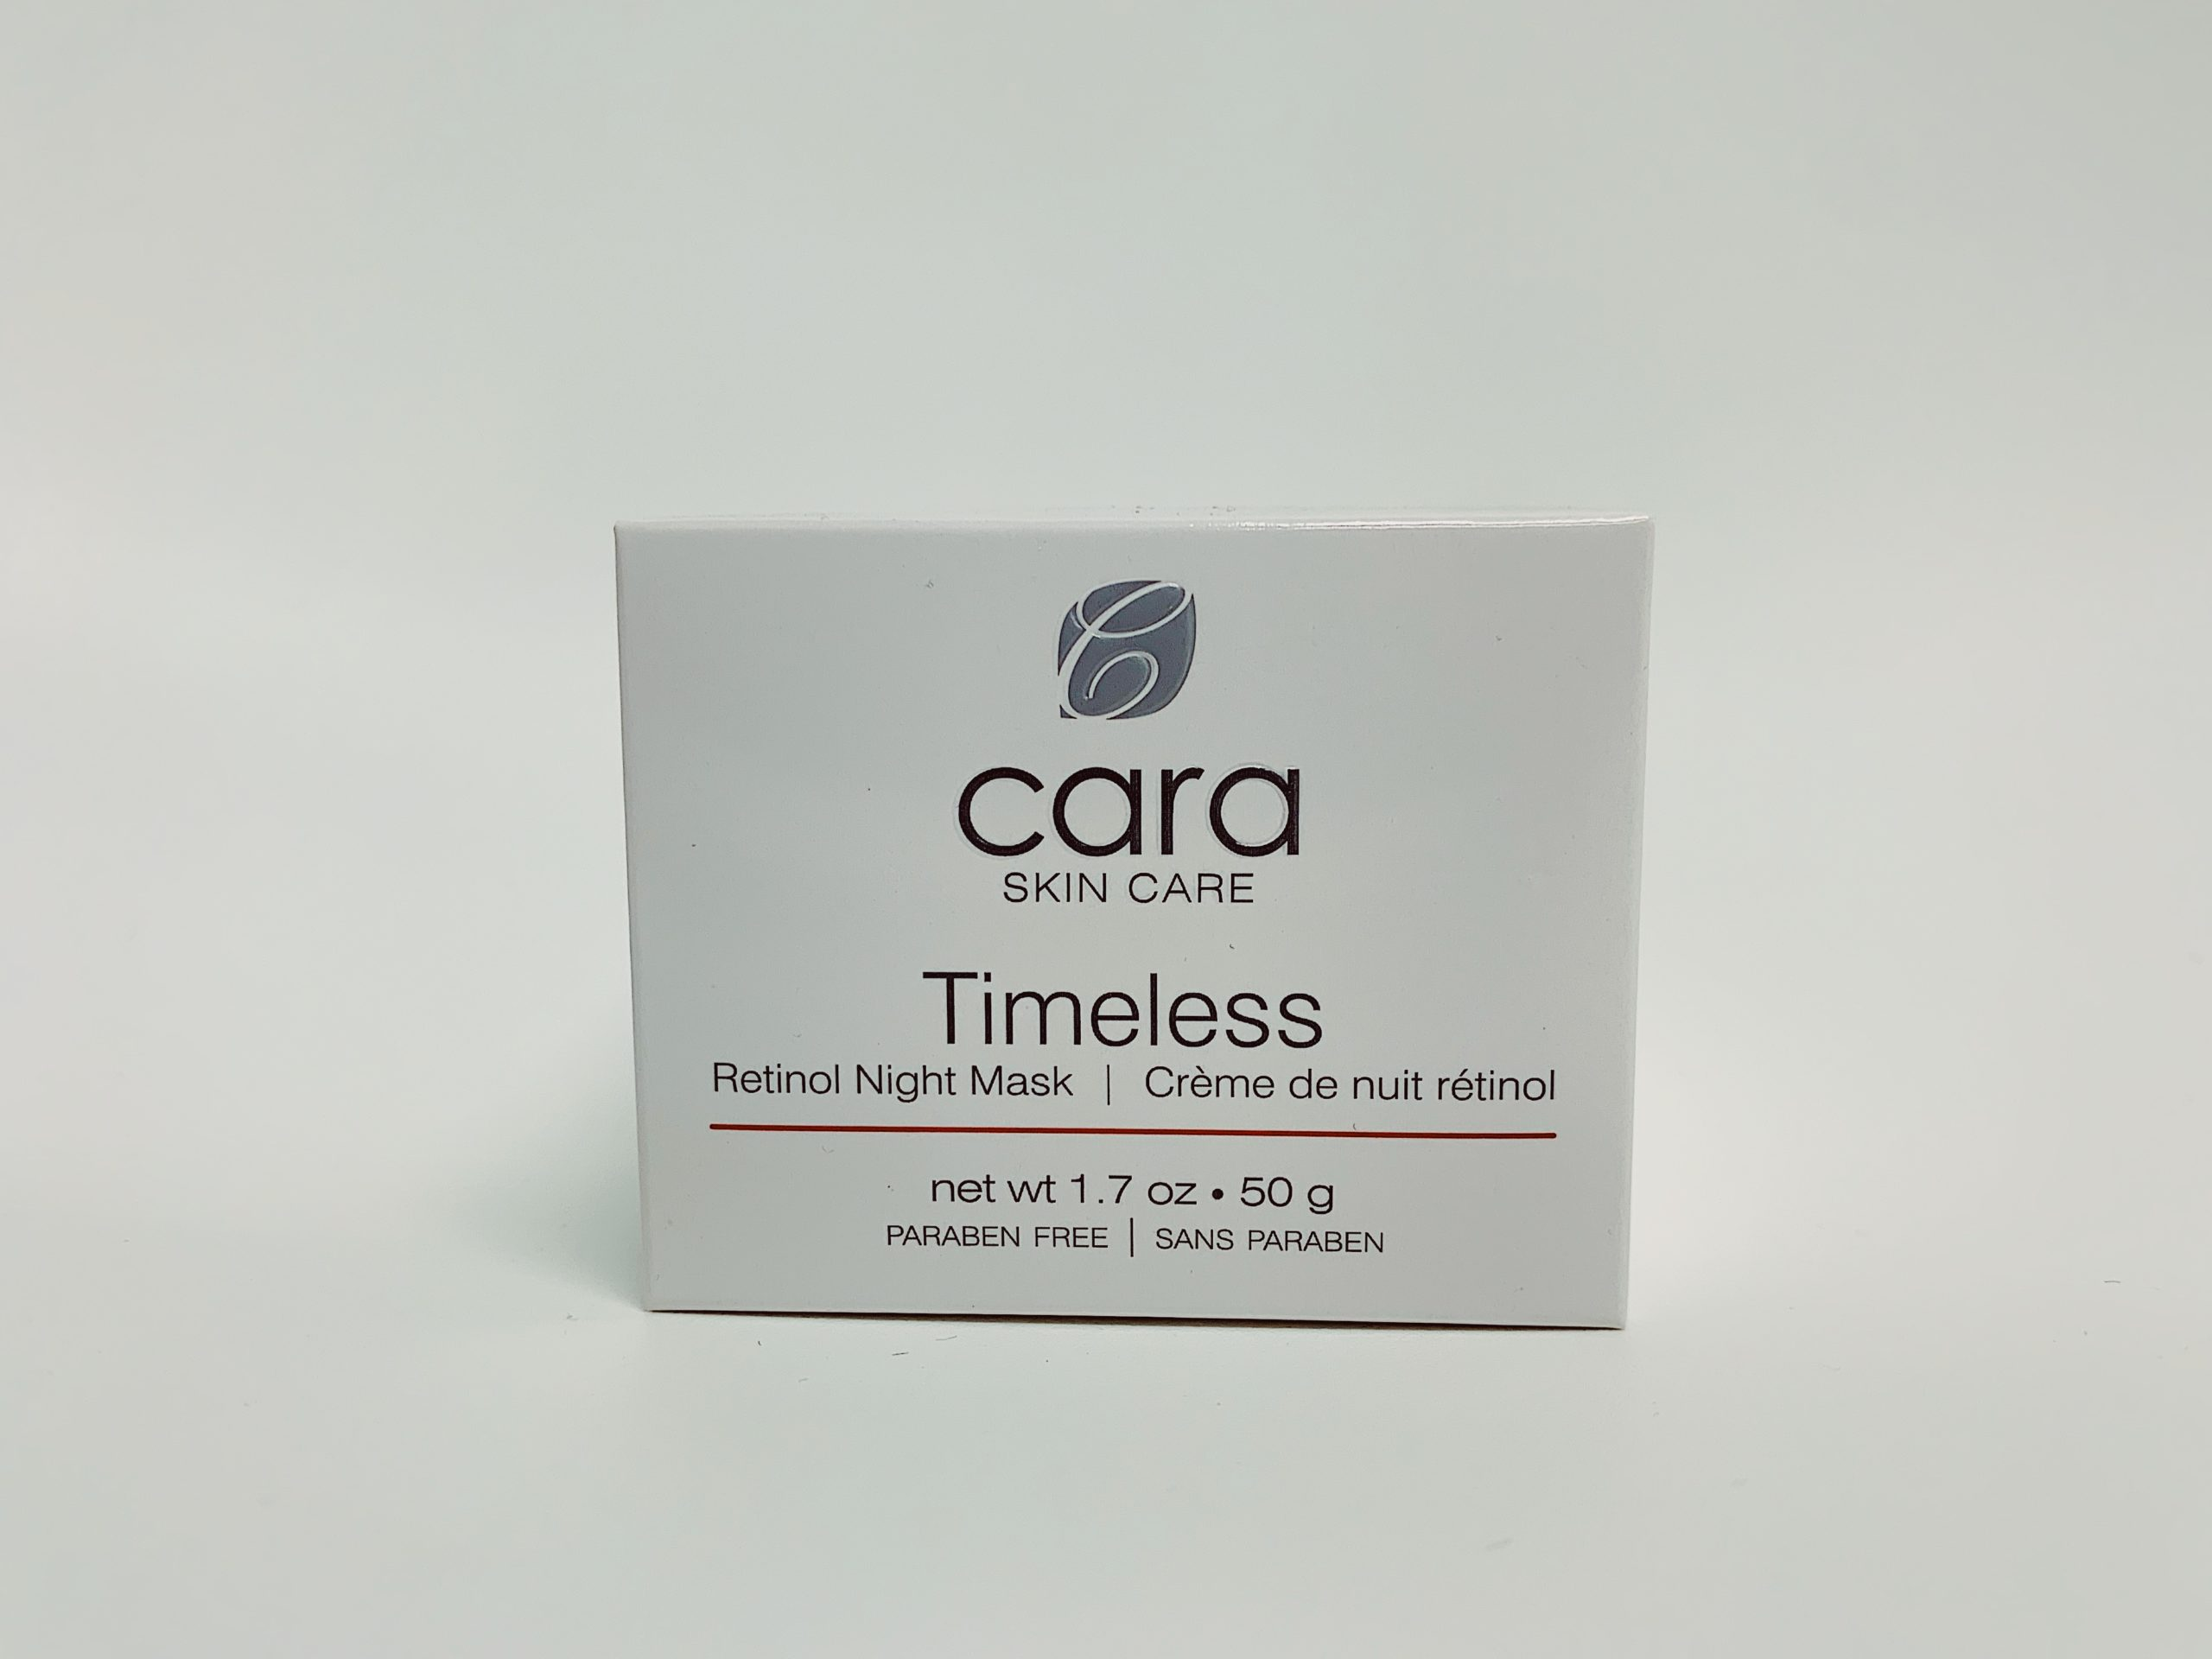 Cara Skin Care Cell MX